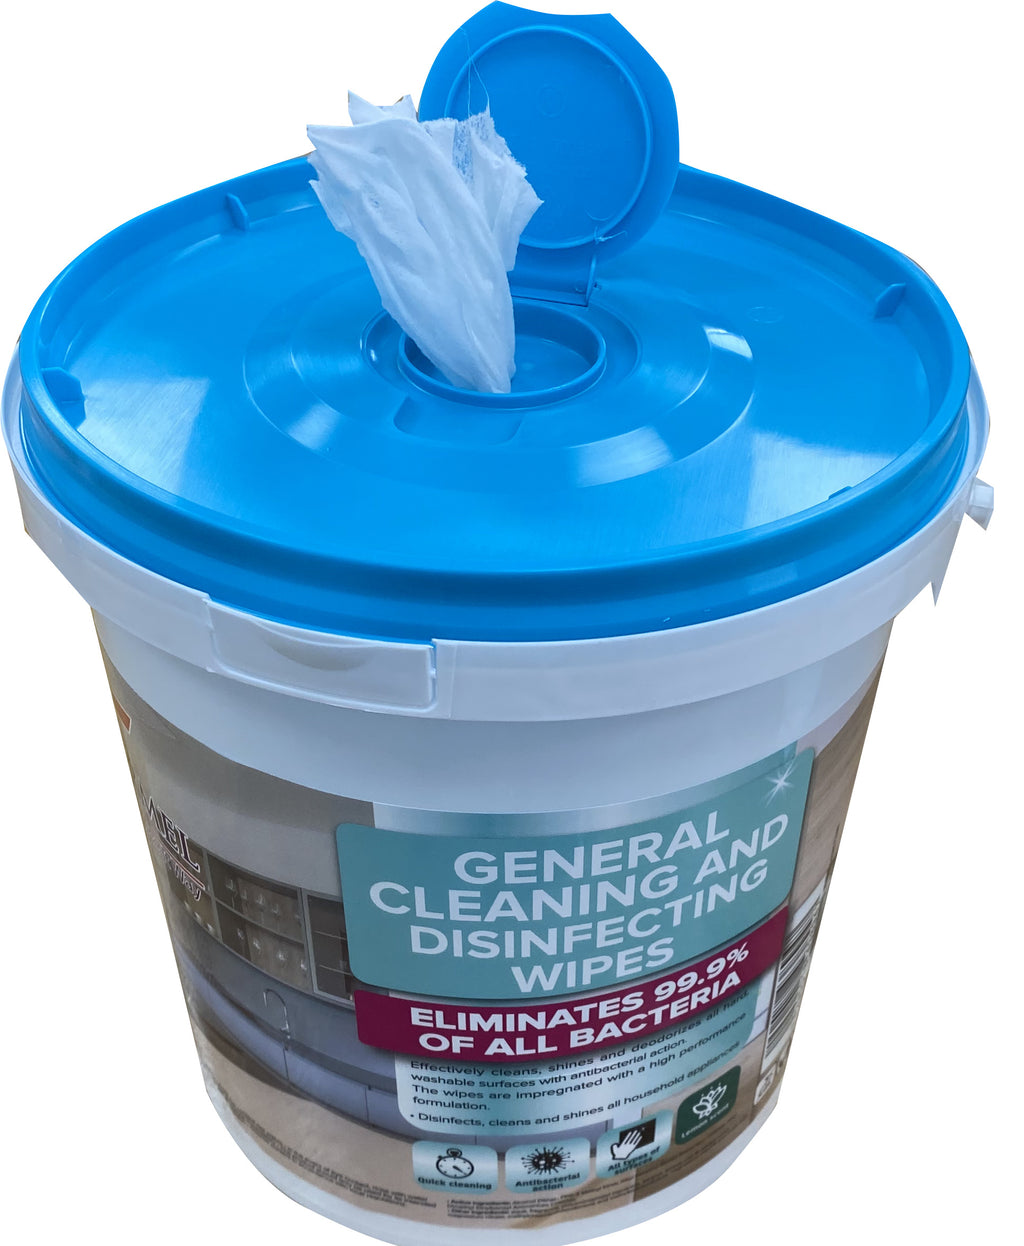 2400 Disinfecting wipes - 6 buckets of 400 wipes  - FREE SHIPPING - - Brooklyn Equipment